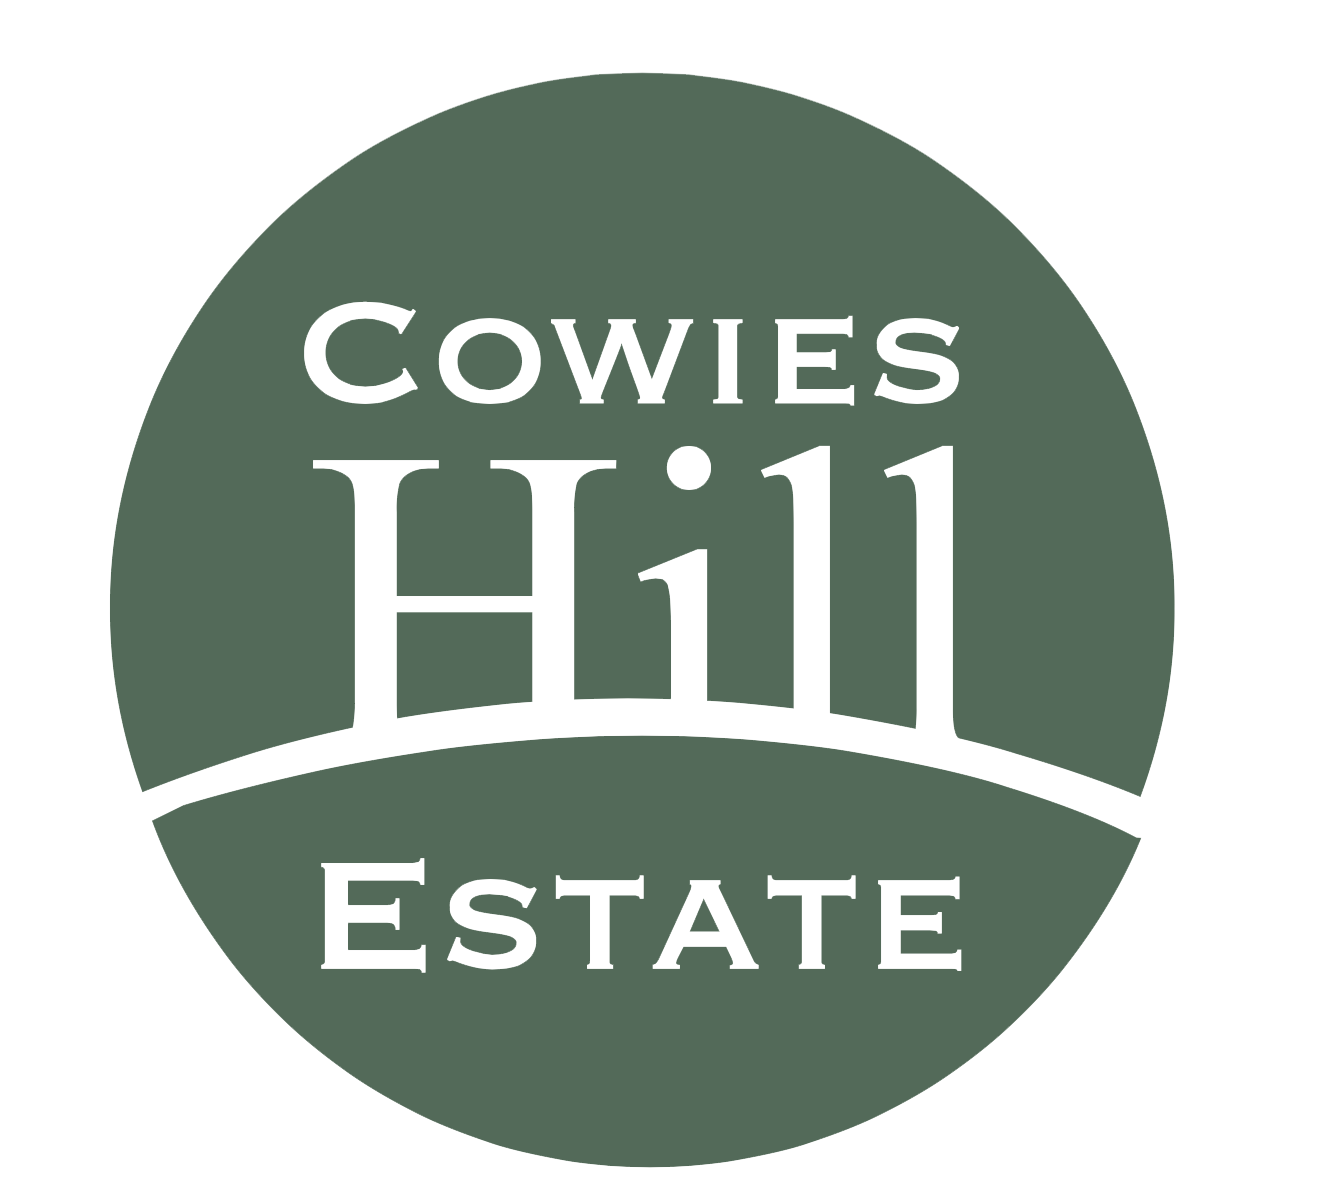 COWIES HILL ESTATE